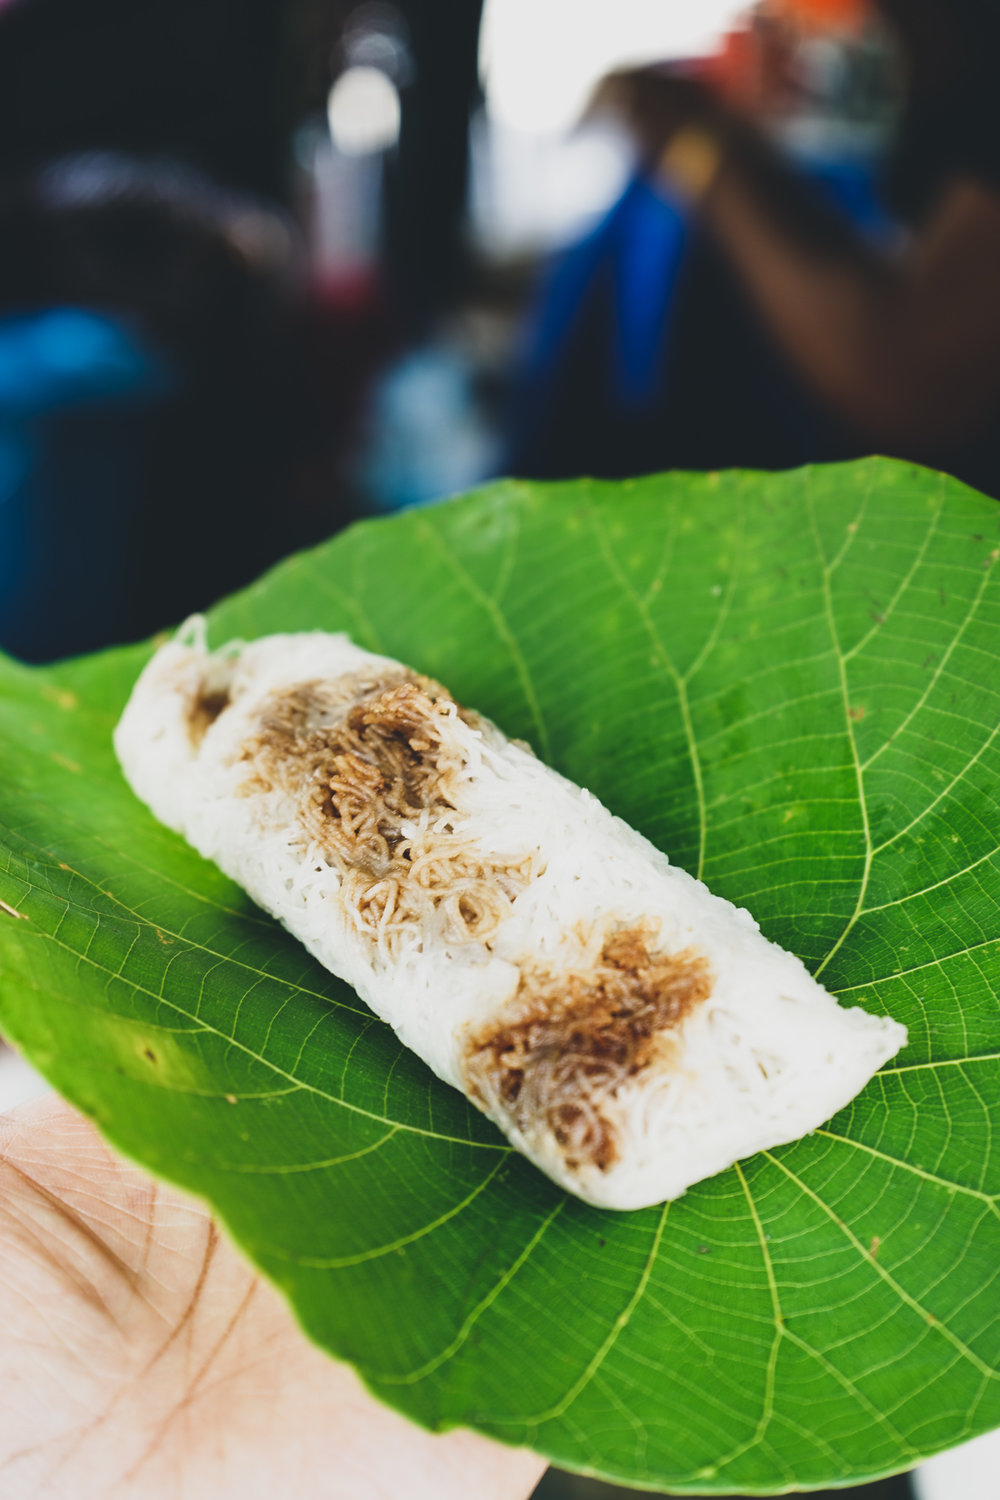 Colombo shopping guide - a delicious laviria at Good Market. The laviria is a jaggery-soaked coconut filling wrapped in a string hopper.